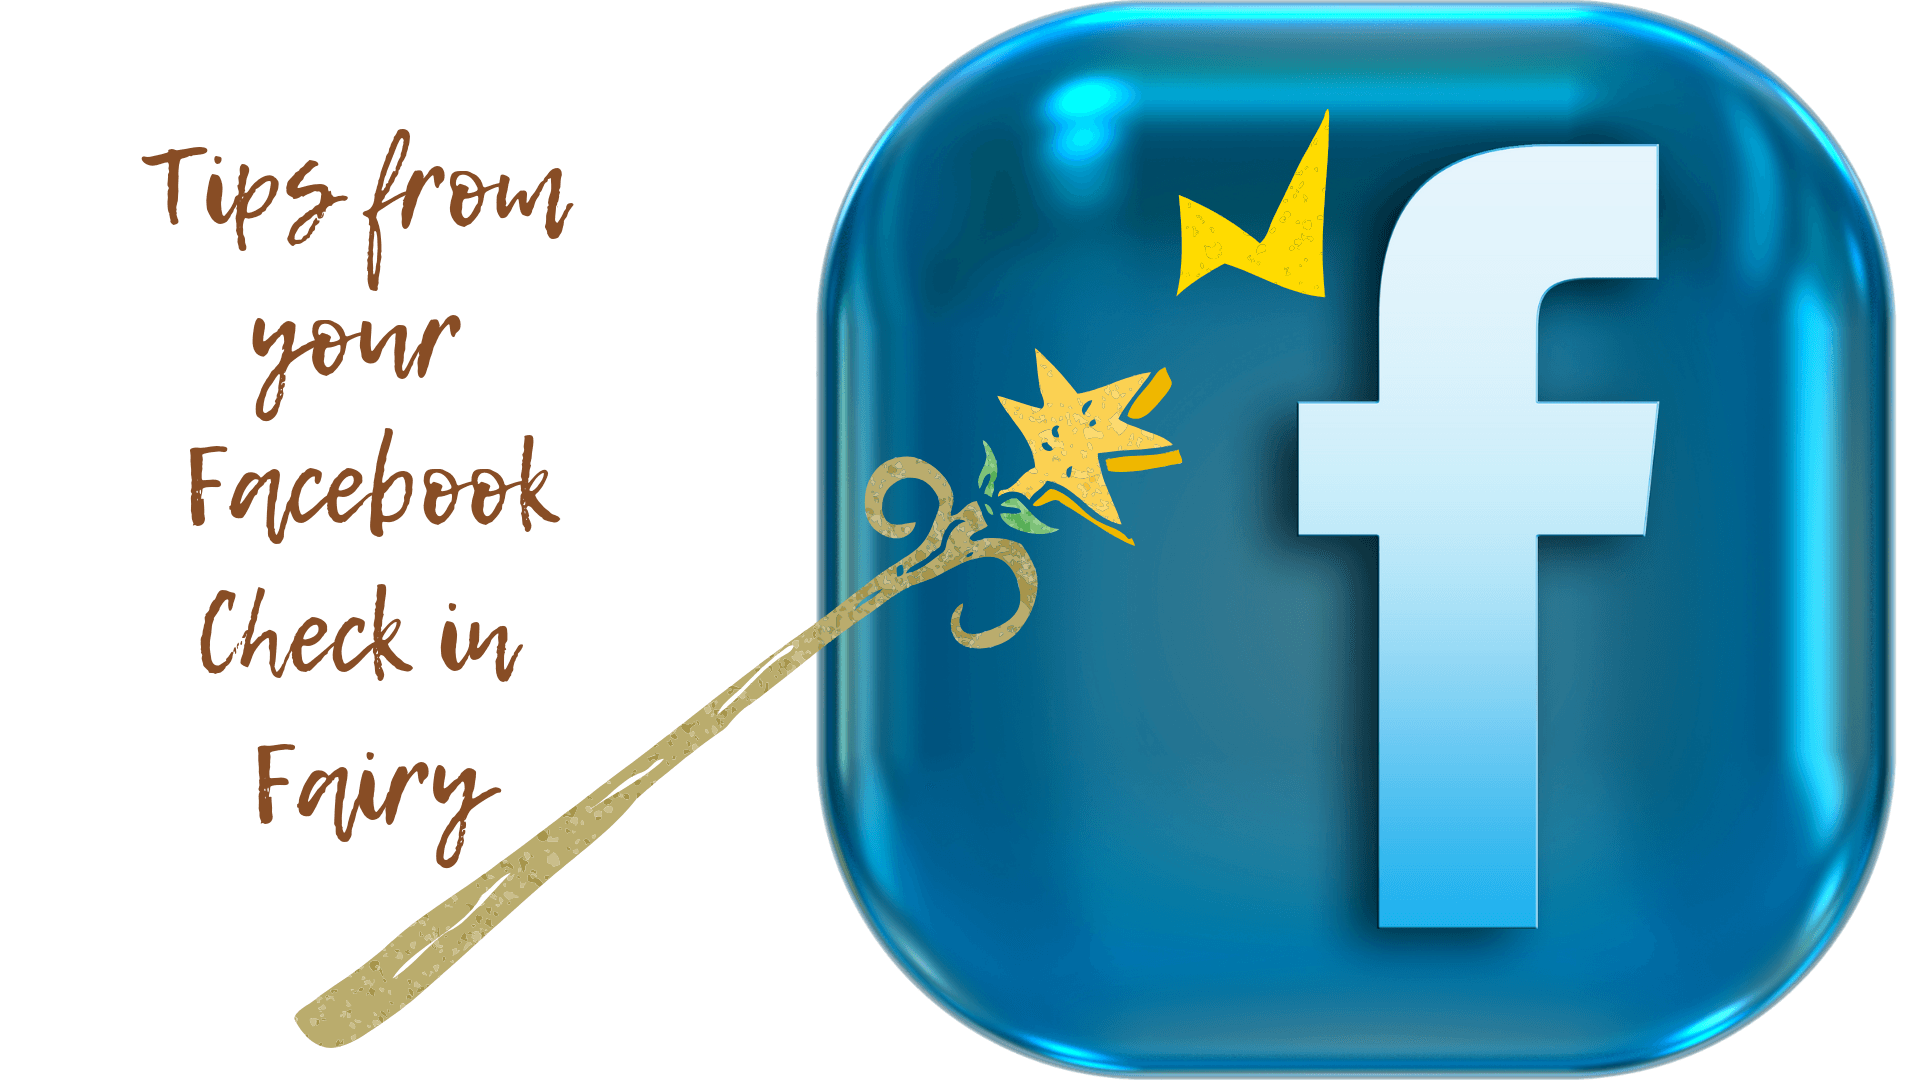 Tips from the Facebook Fairy: Top 10 Reasons Your Customers Love Facebook Check In